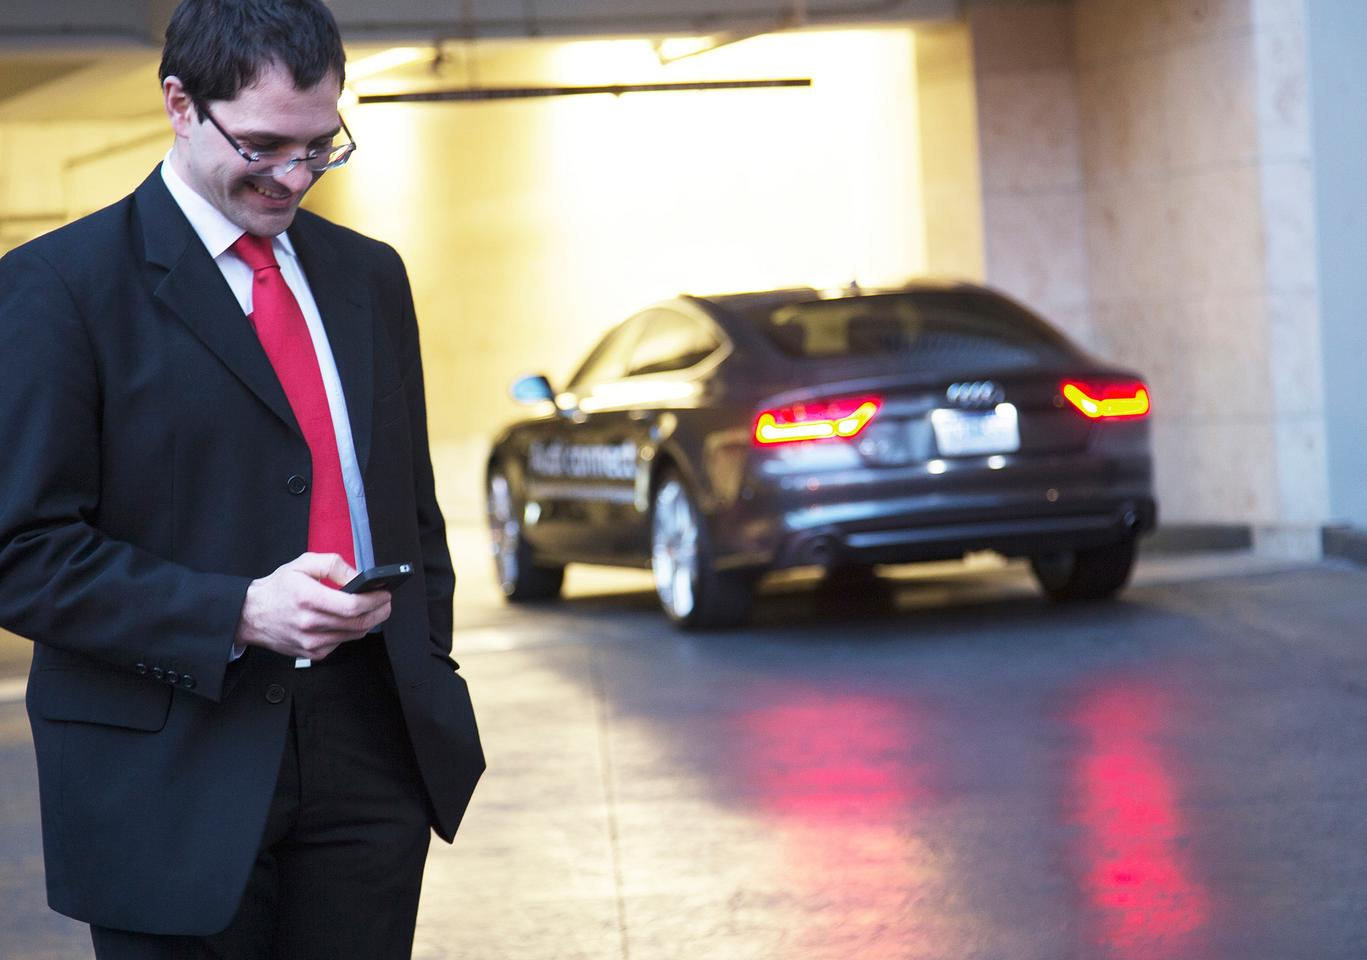 Audi's piloted parking project uses a smartphone app, wireless communications and advanced vehicle sensors for self-parking